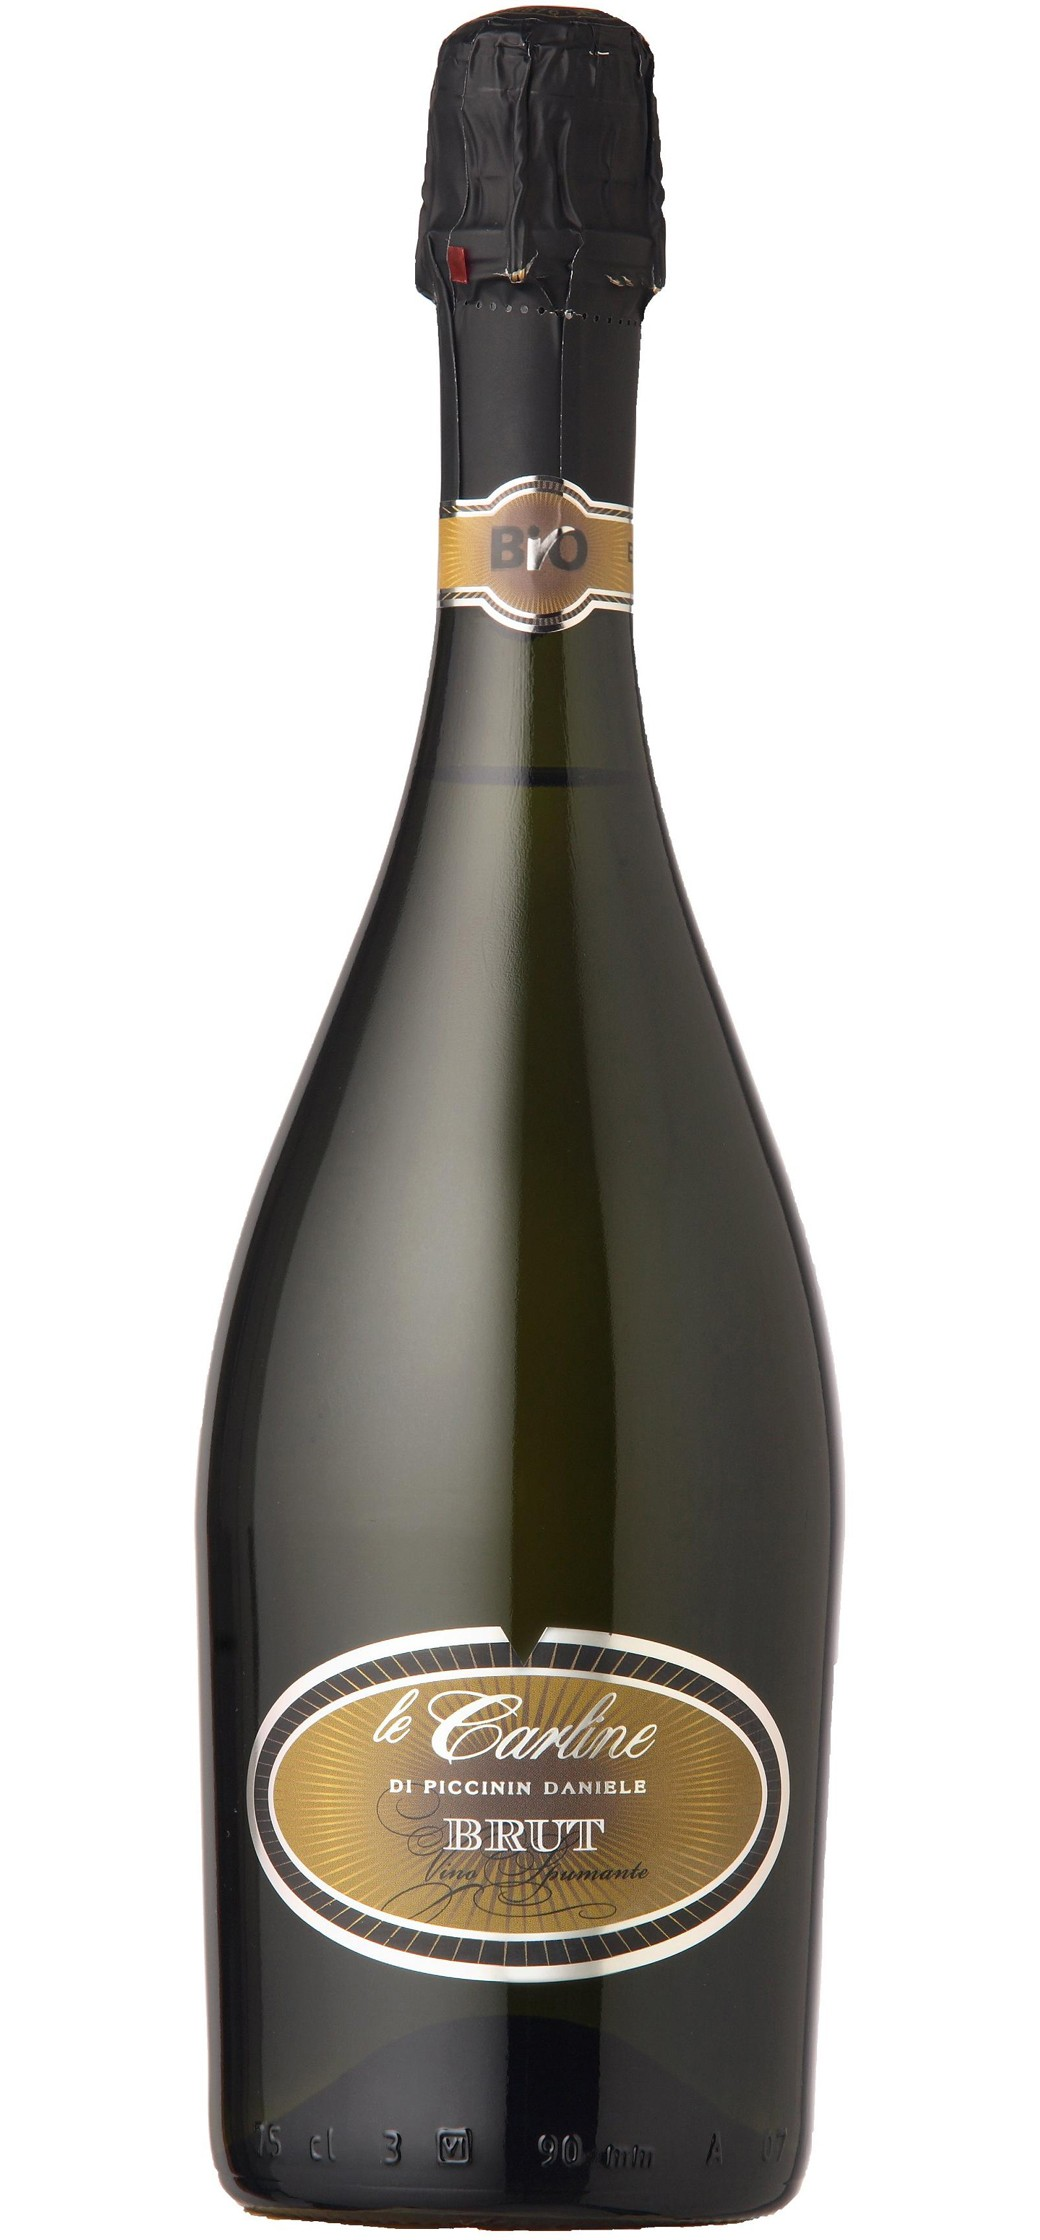 (Italiano) Spumante Brut Le Carline